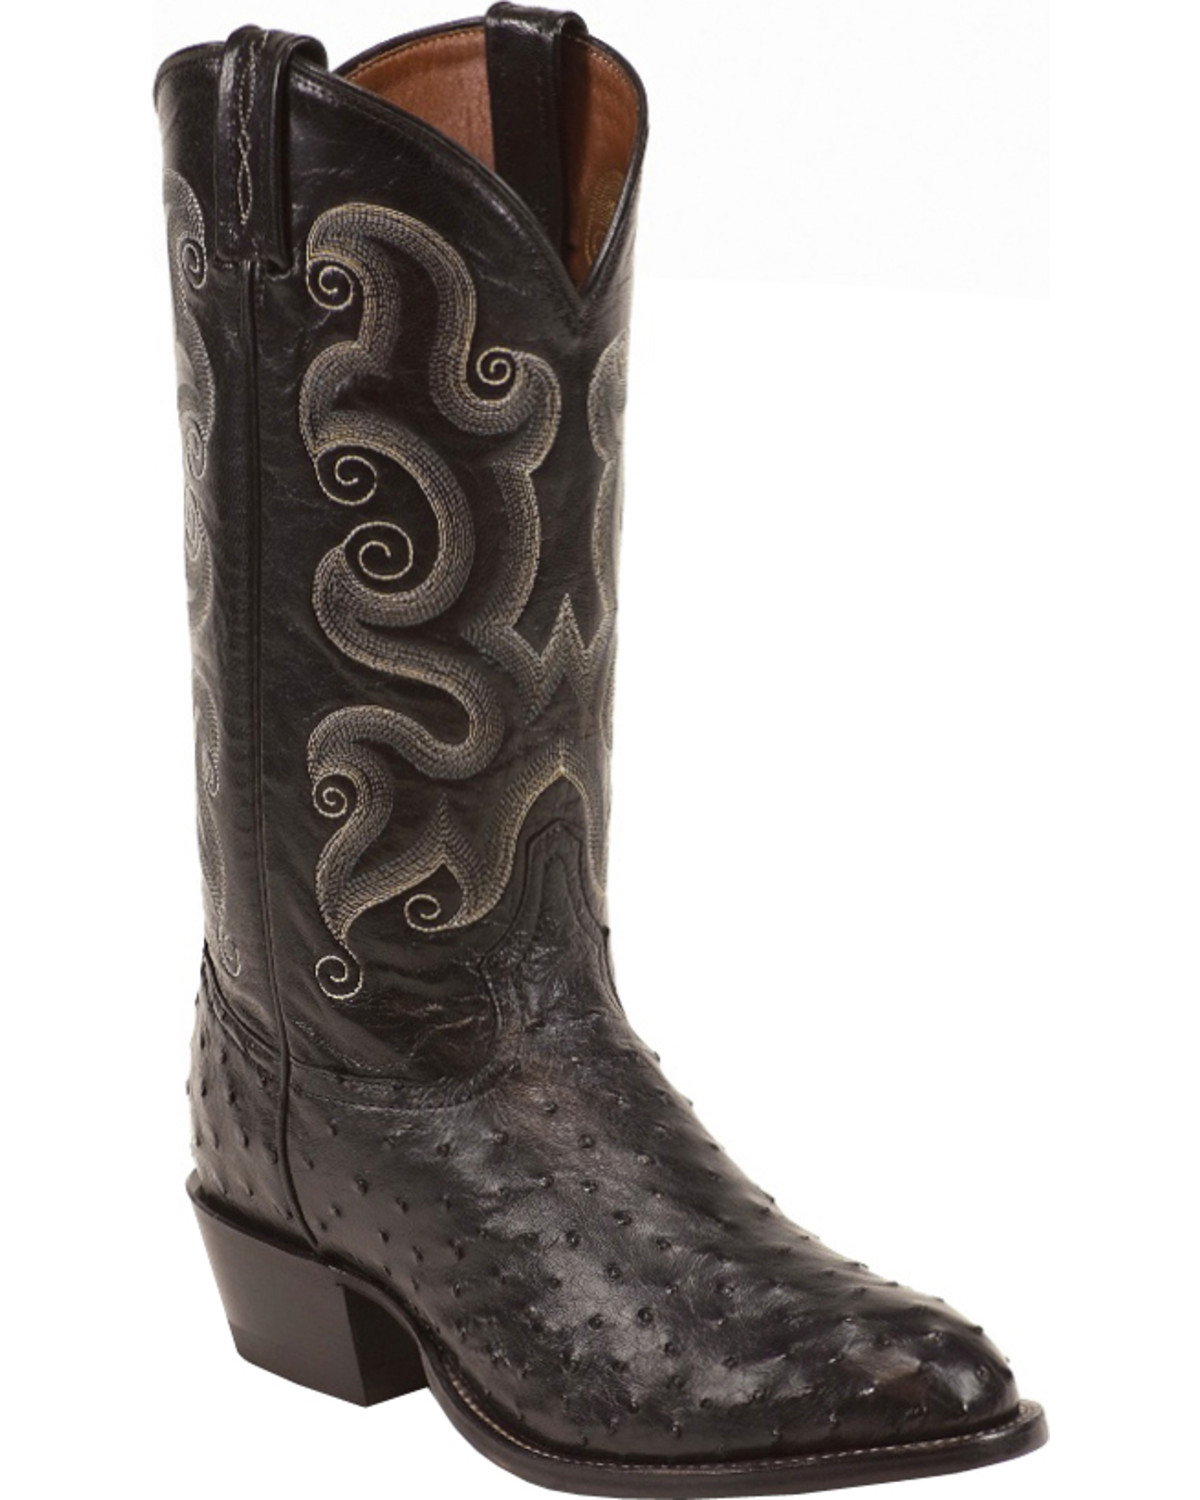 Tony Lama Full Quill Ostrich Cowboy Boots Round Toe